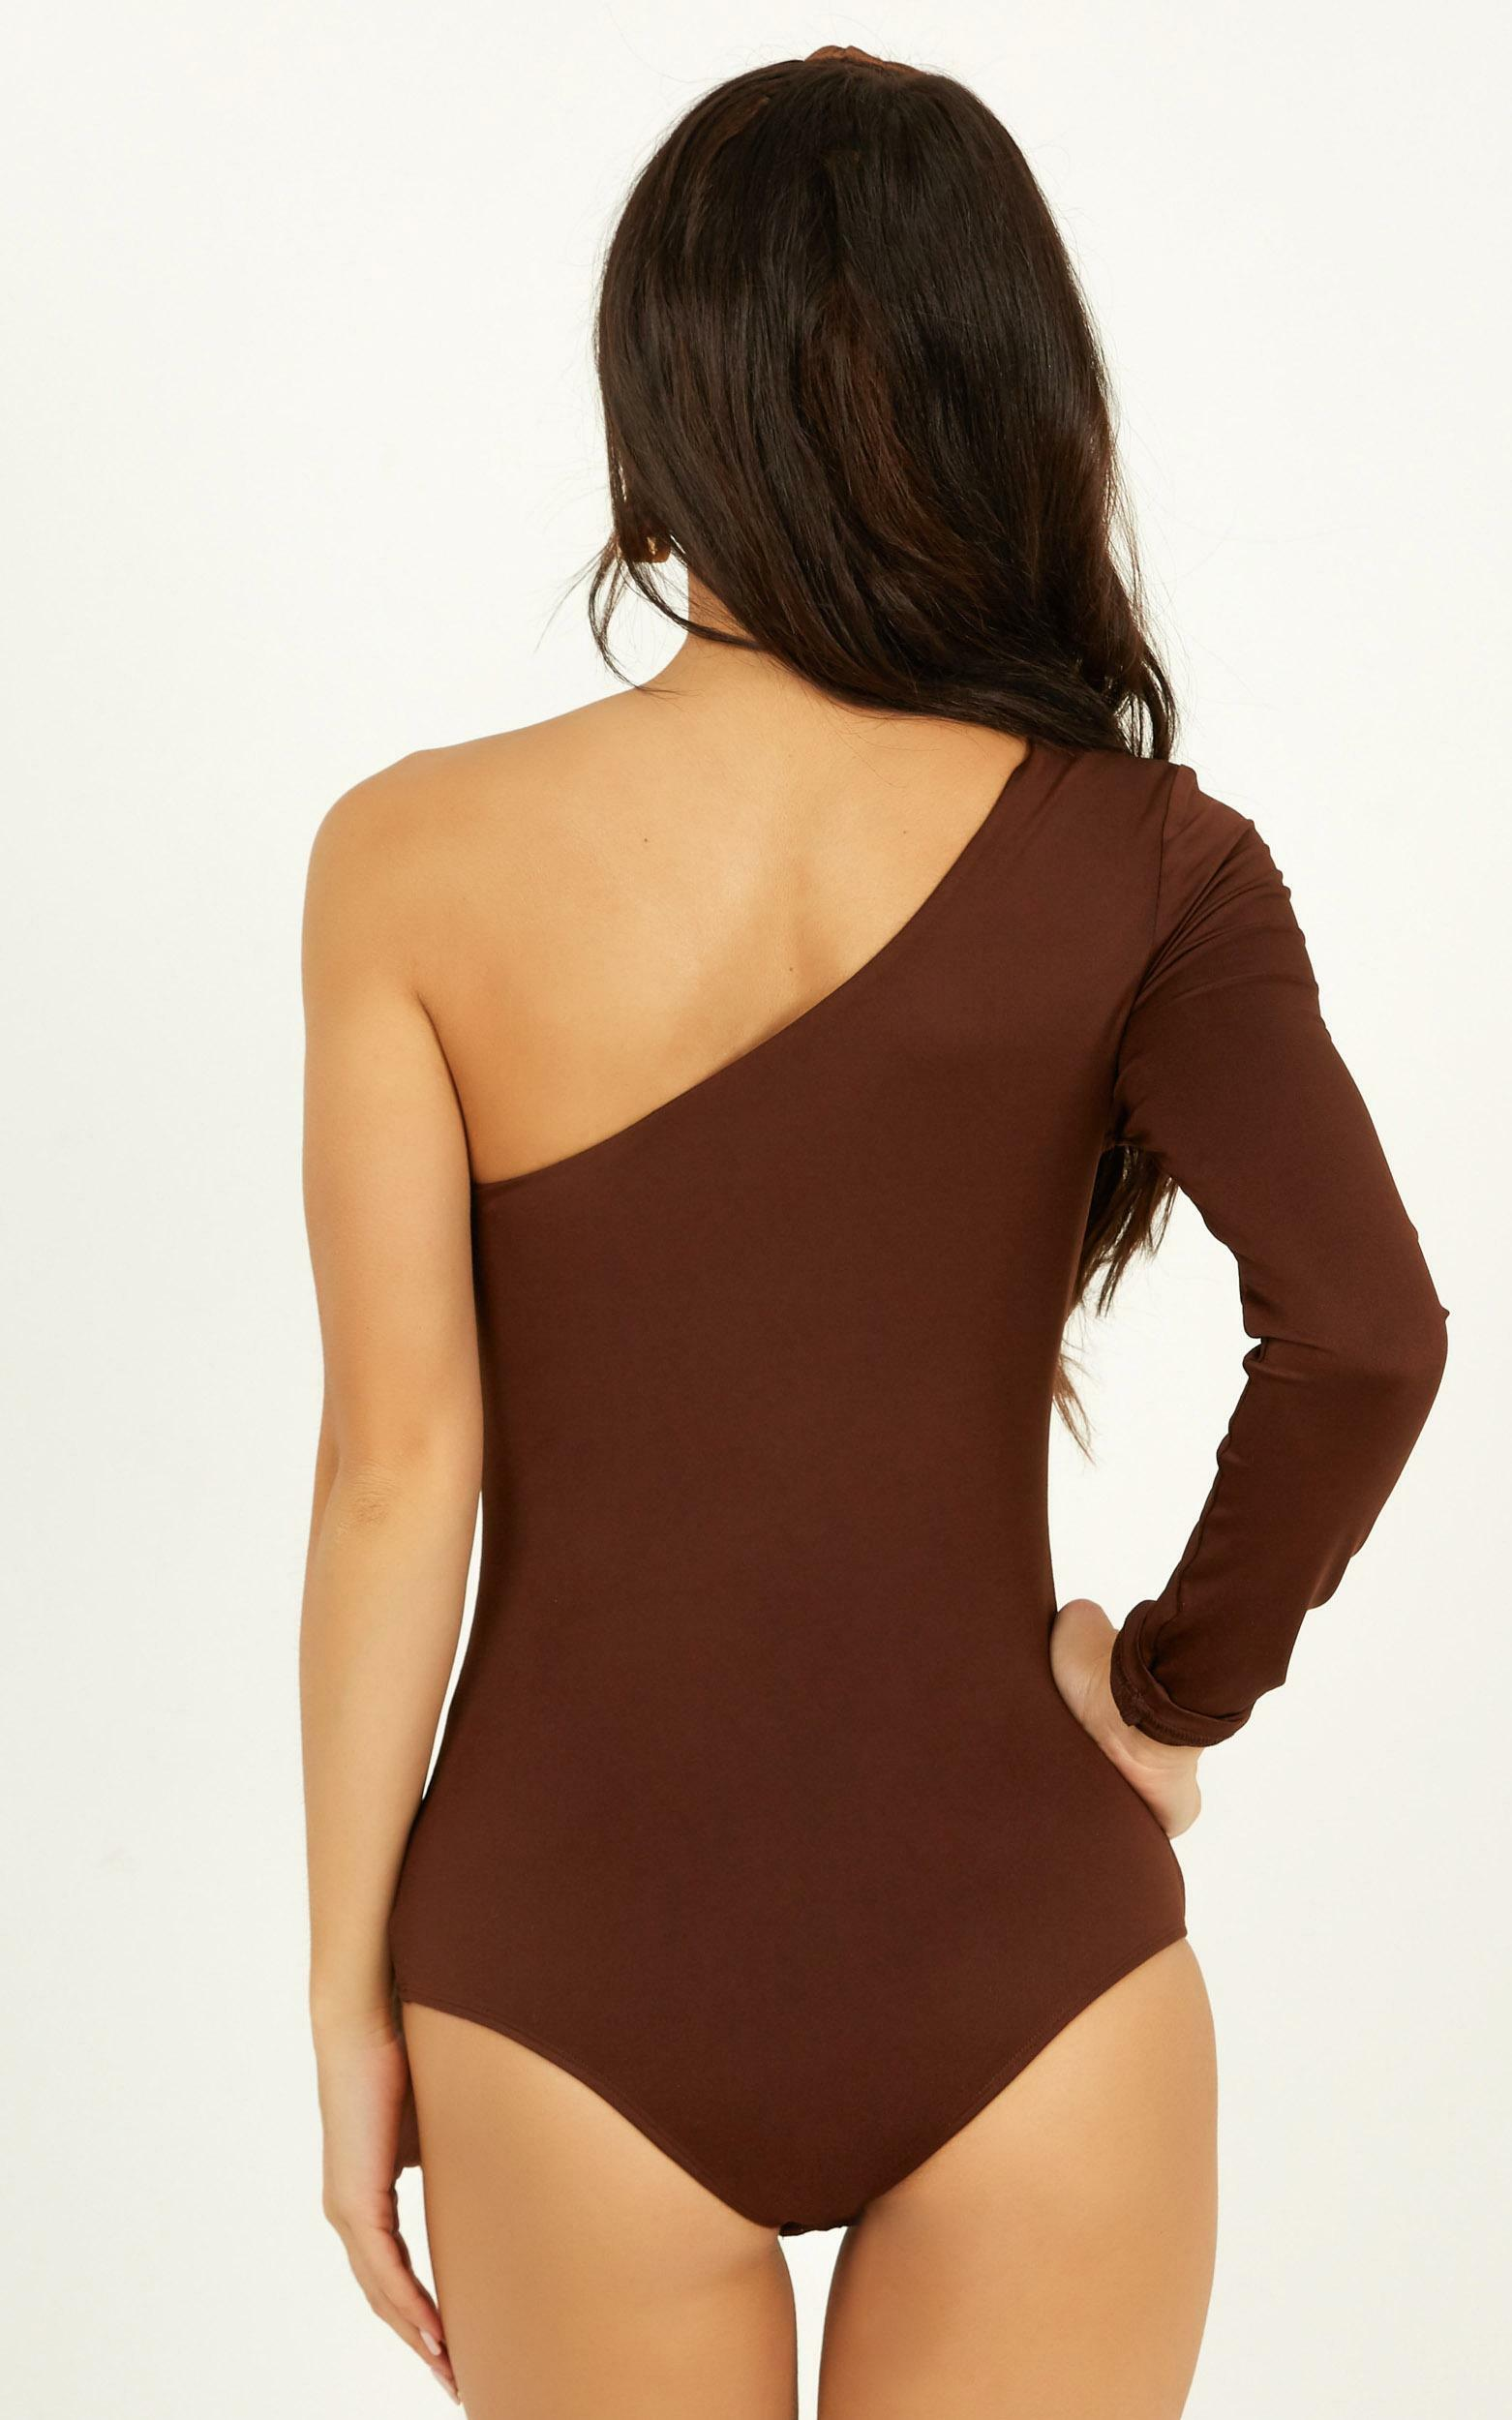 You Spoke My Name Bodysuit In chocolate - 16 (XXL), Brown, hi-res image number null